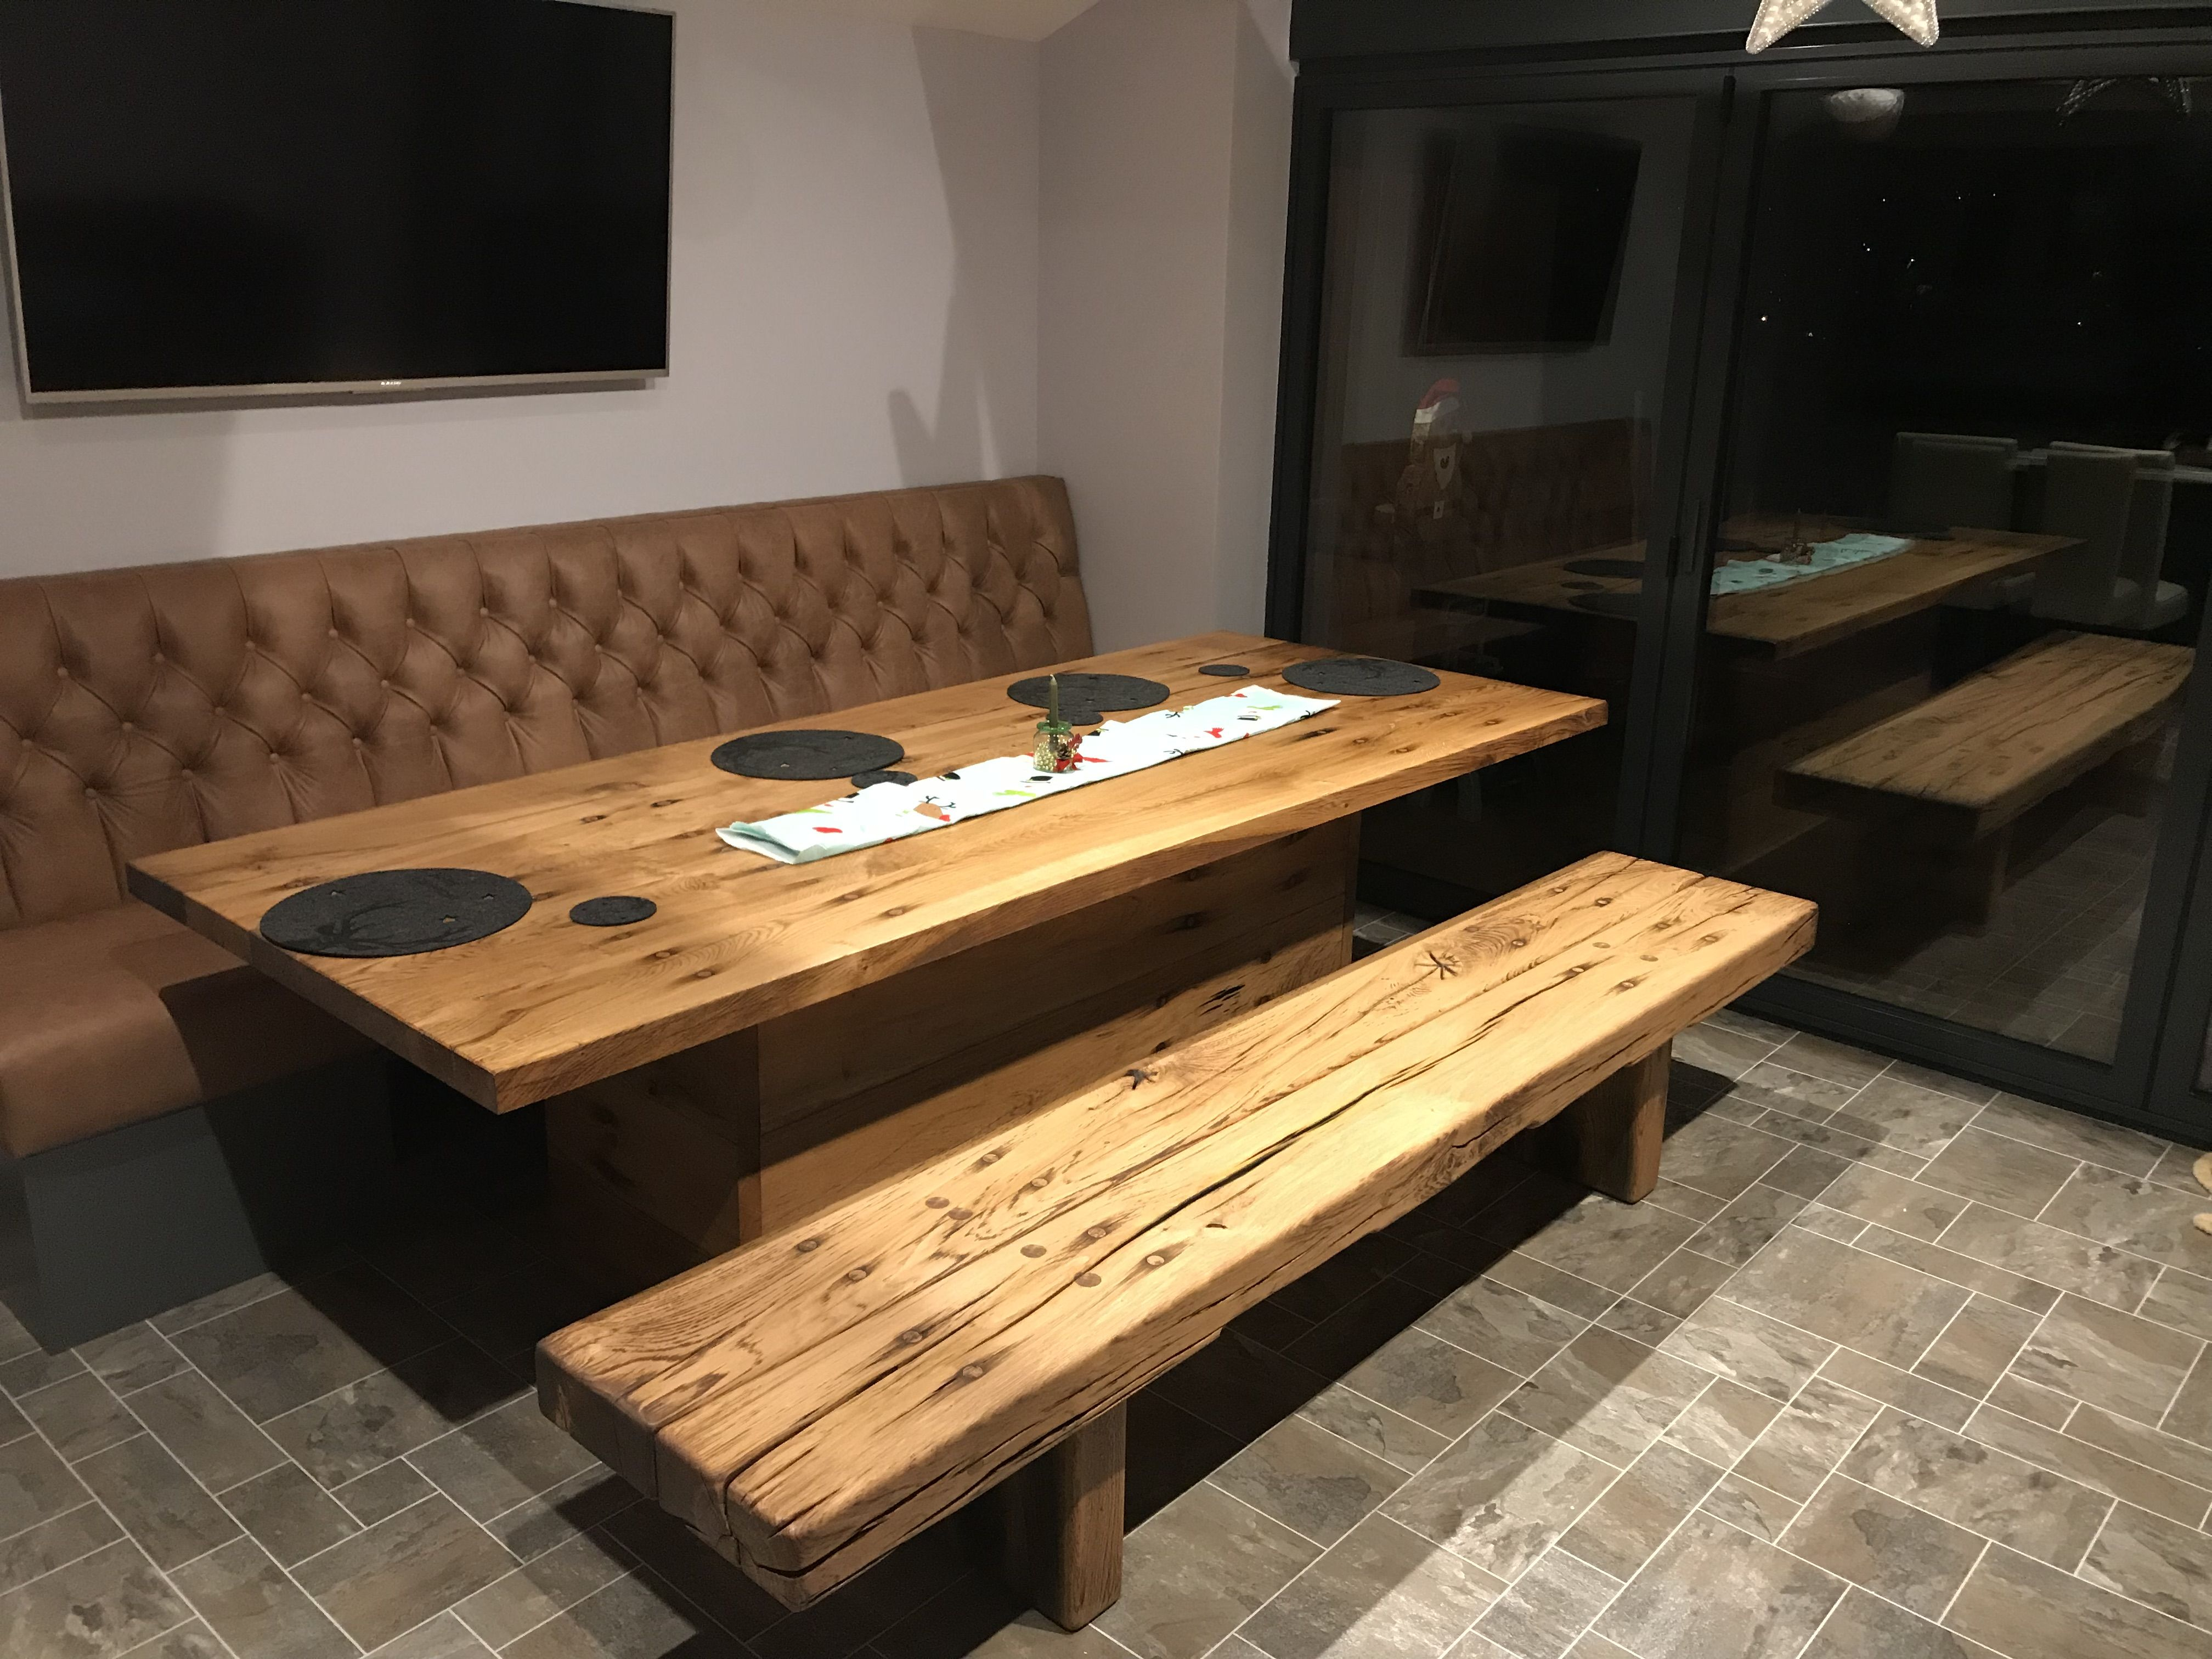 Table & bench made from reclaimed railway sleepers ...